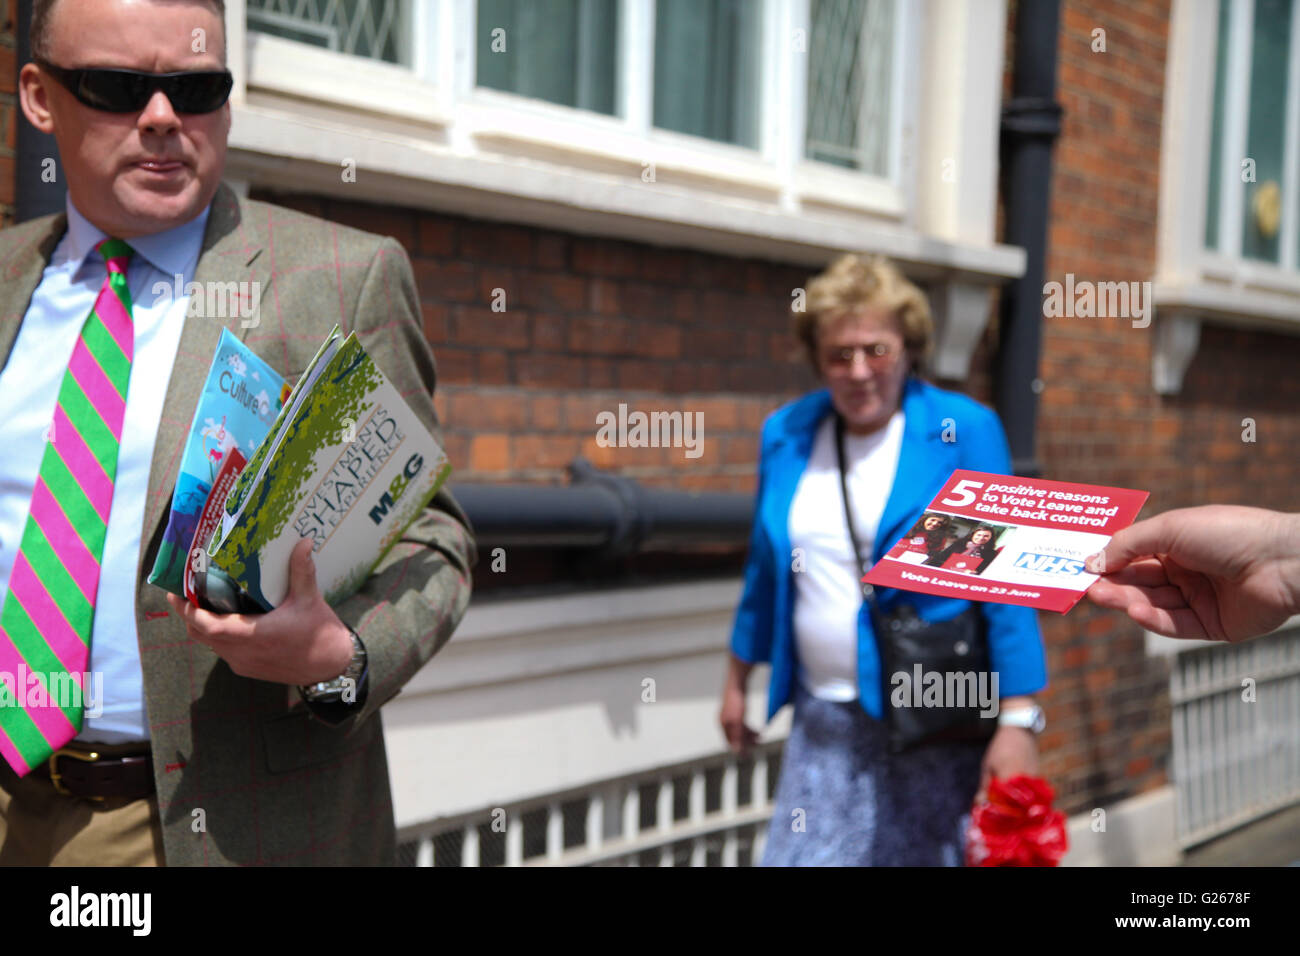 Sloane Square, London, UK 24 May 2016 - Vote Leave campaigners outside RHS Chelsea Flower Show Credit:  Dinendra Stock Photo